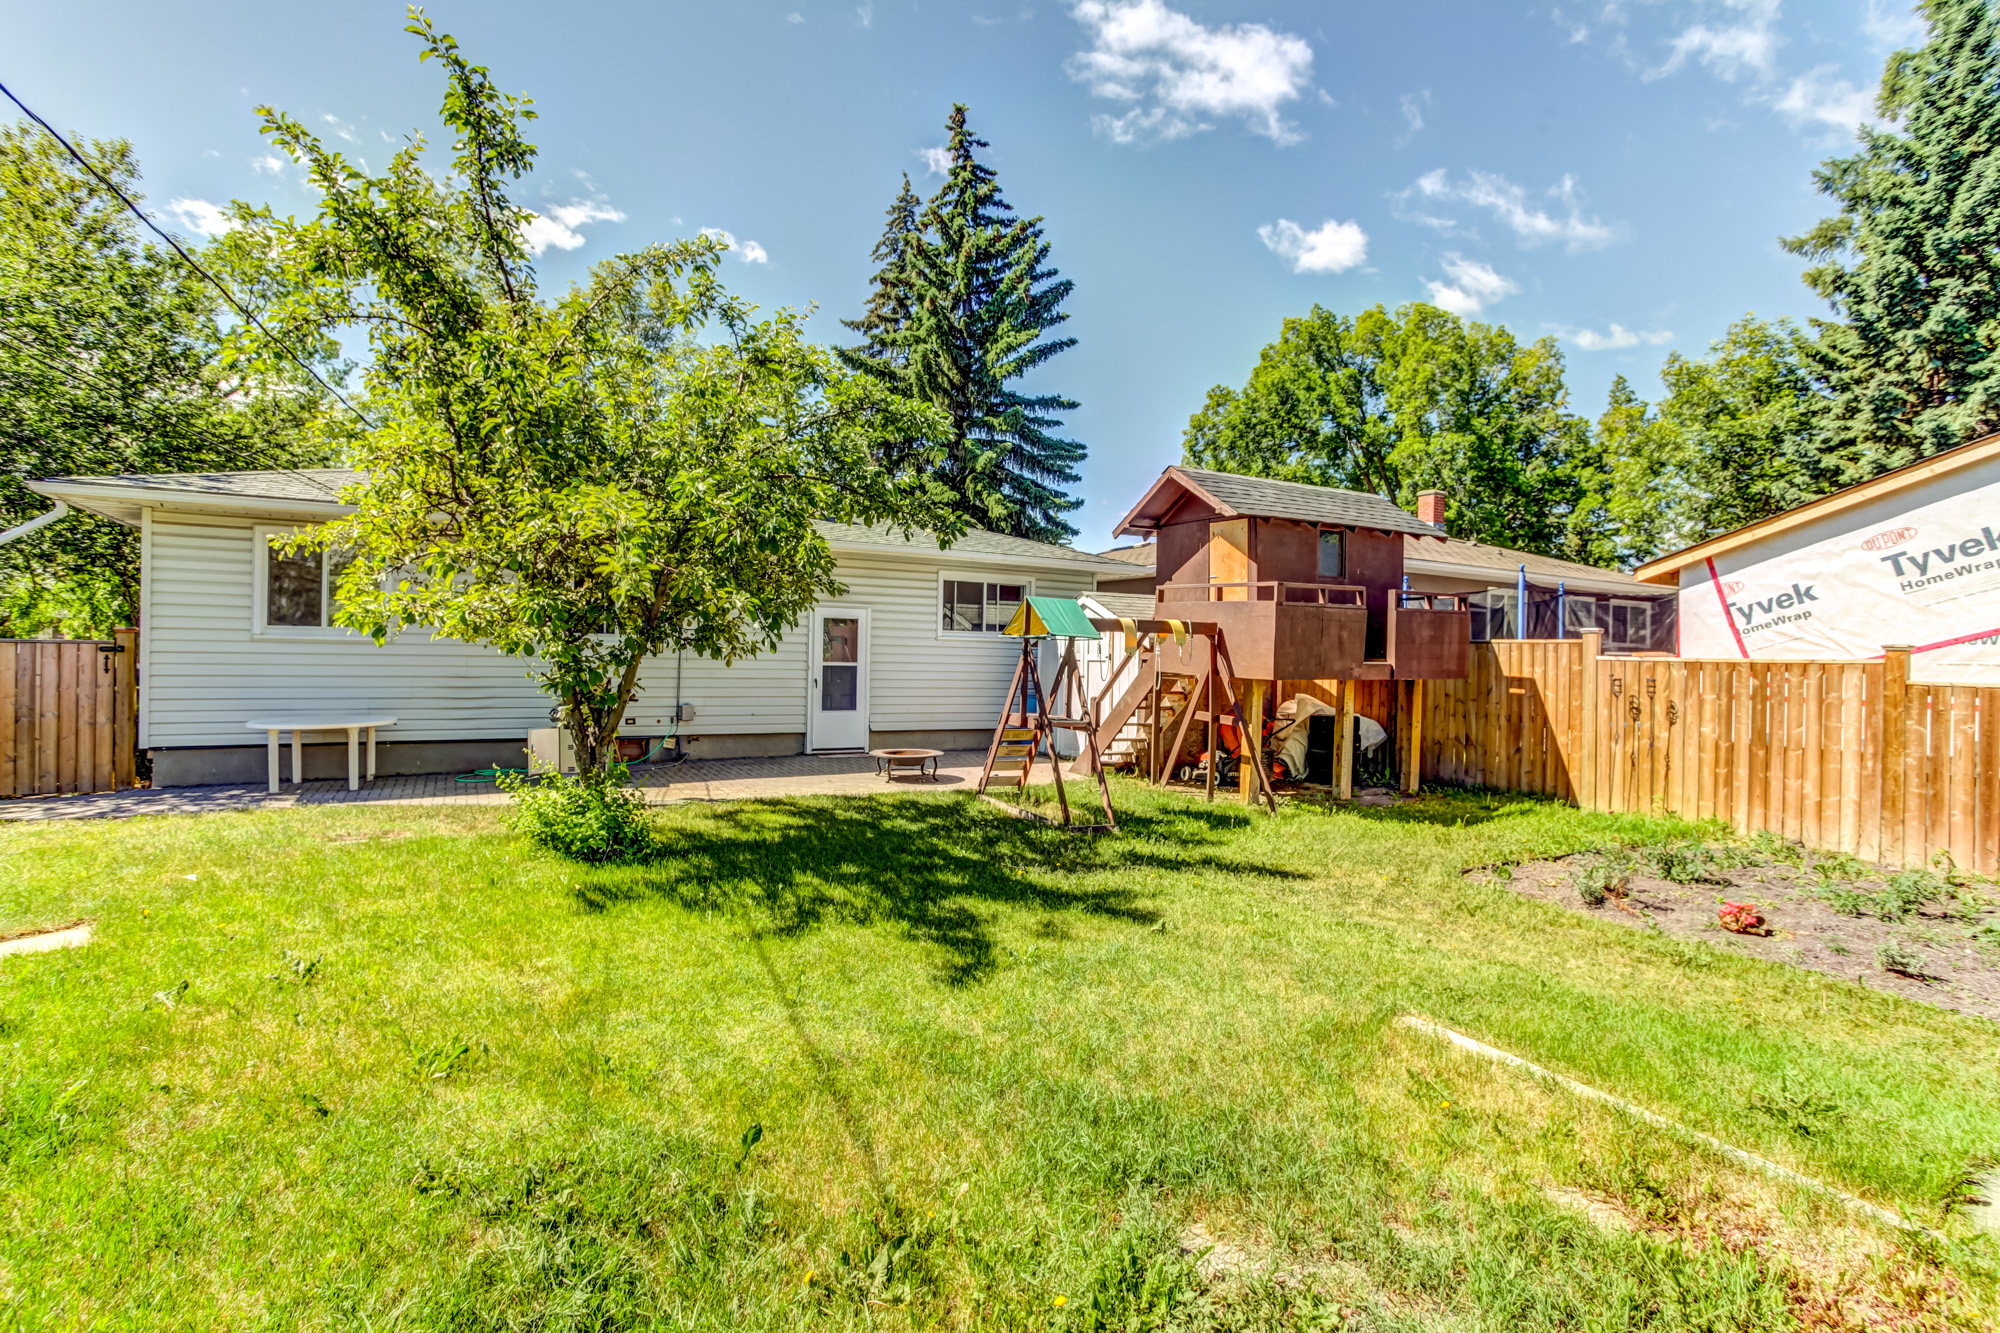 72 Kendall Pl SW in Calgary, AB